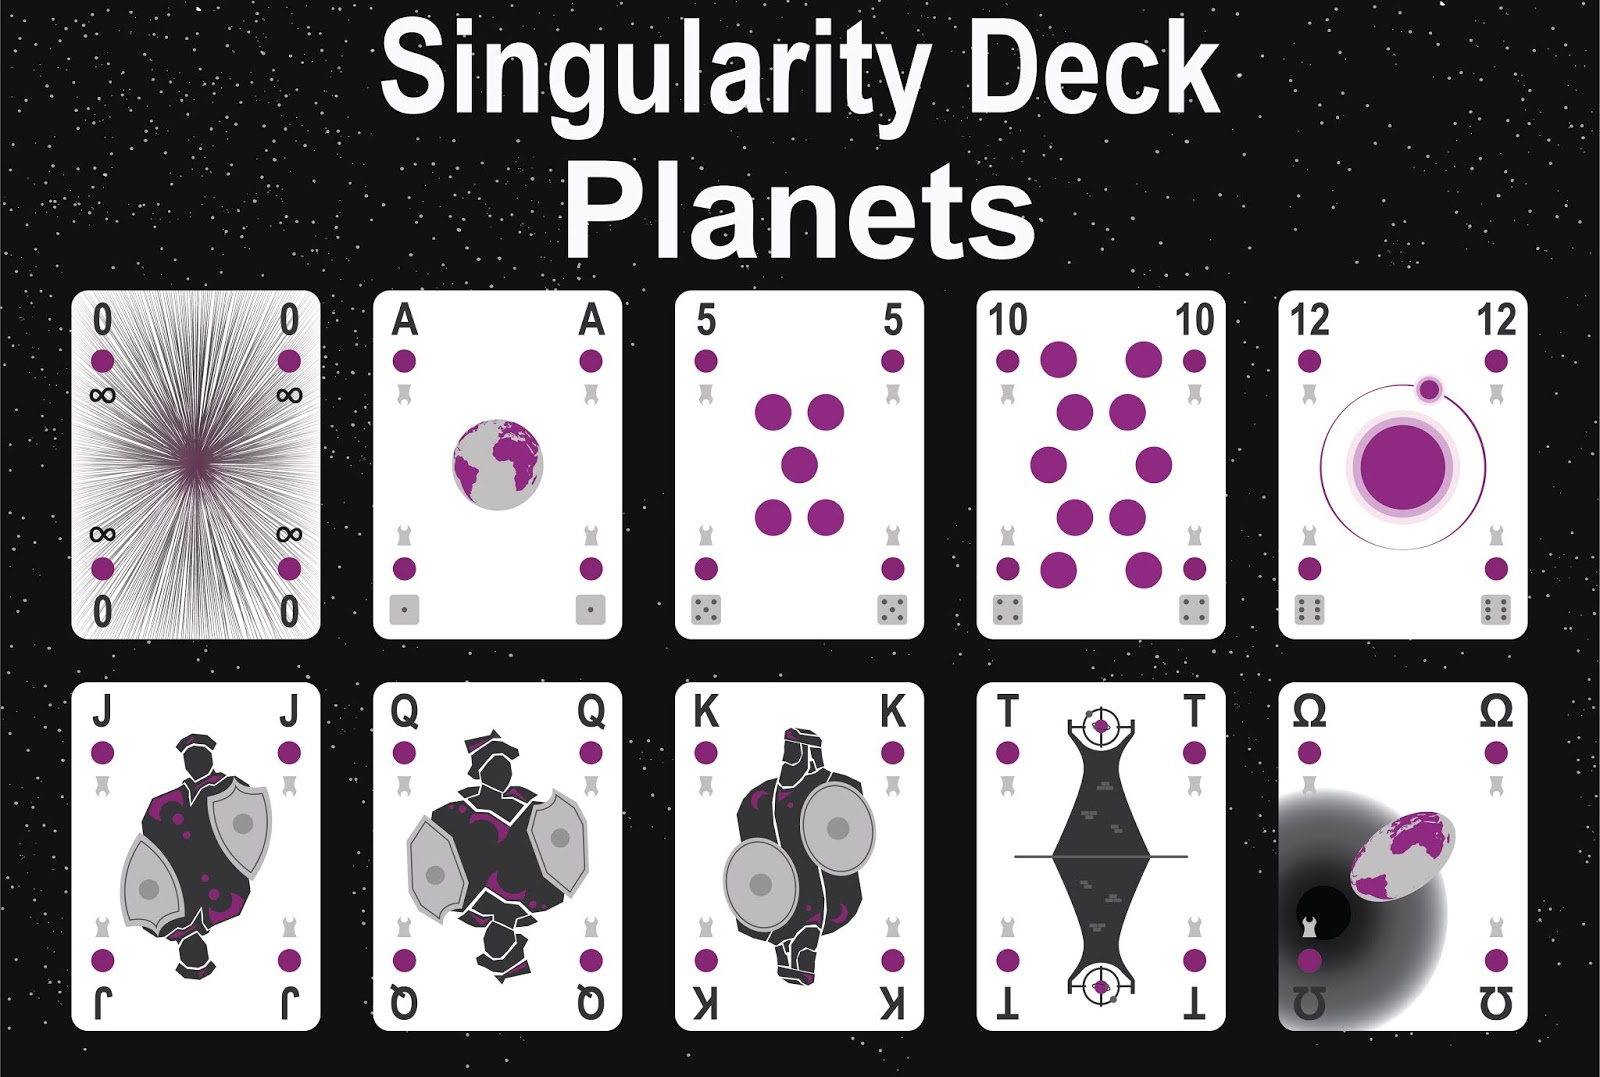 The Singularity Deck - Planets Art